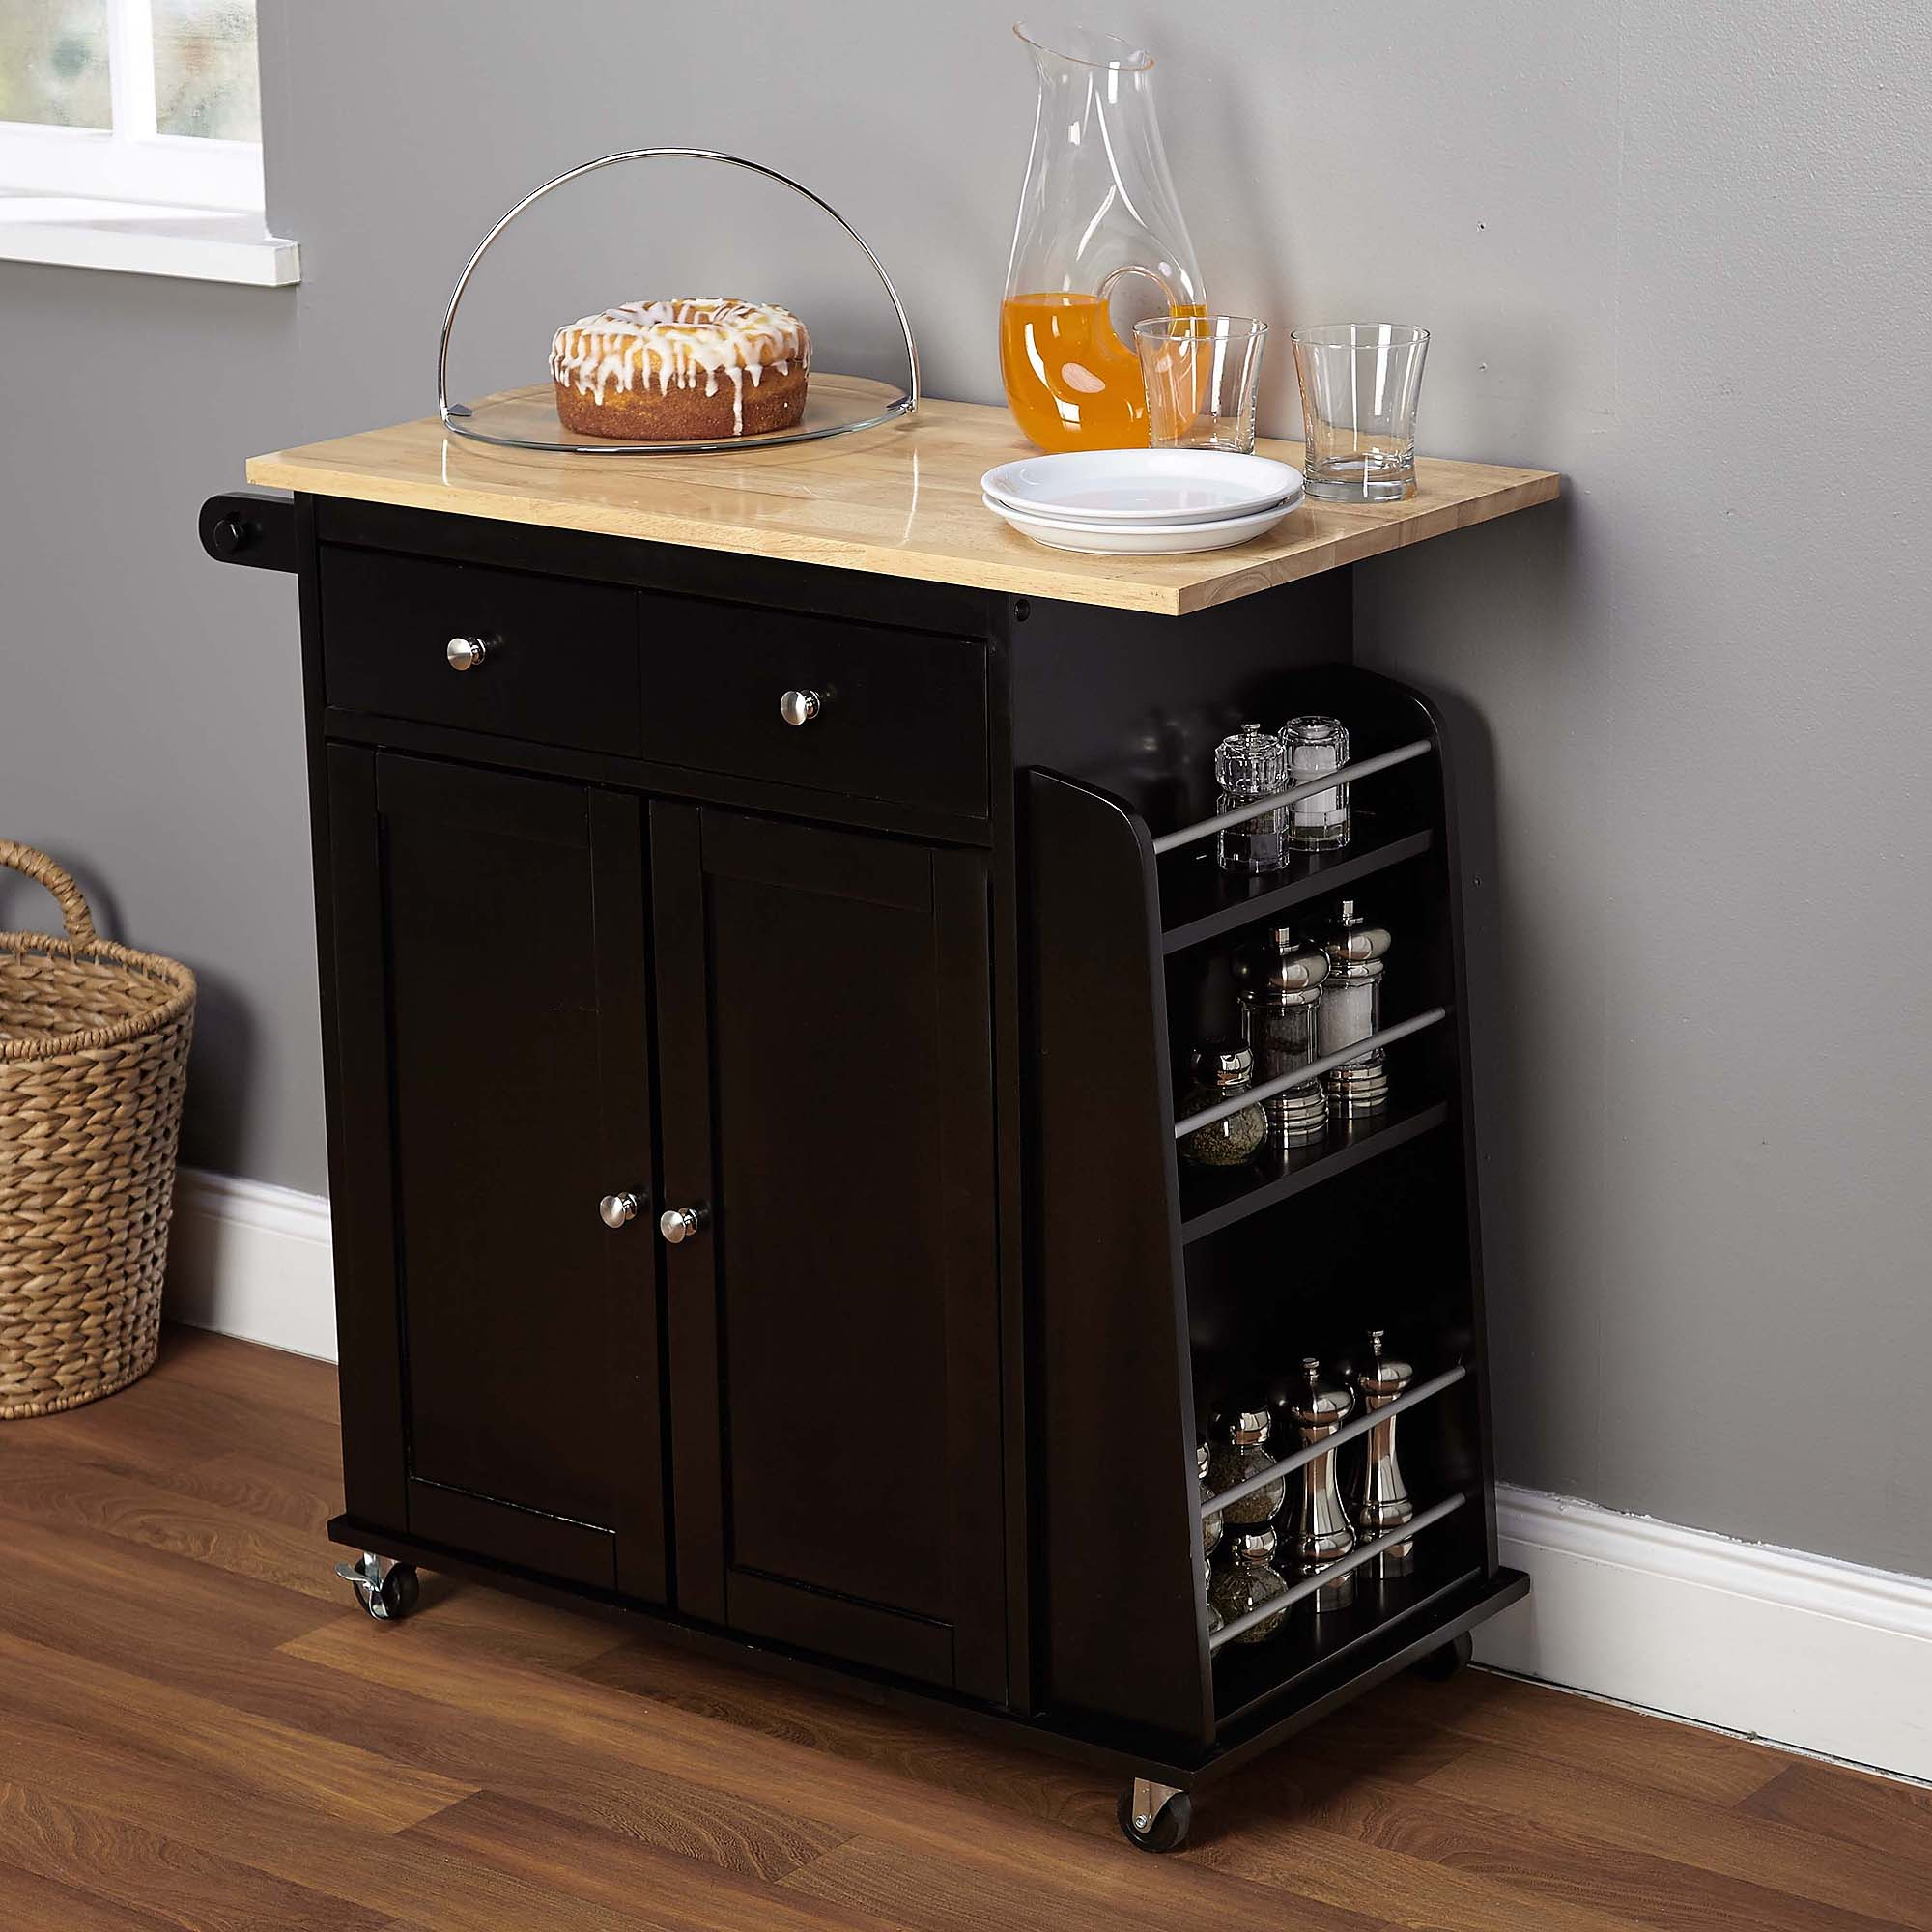 kitchen utility carts storage cabinet target marketing systems sonoma cart multiple colors walmart com